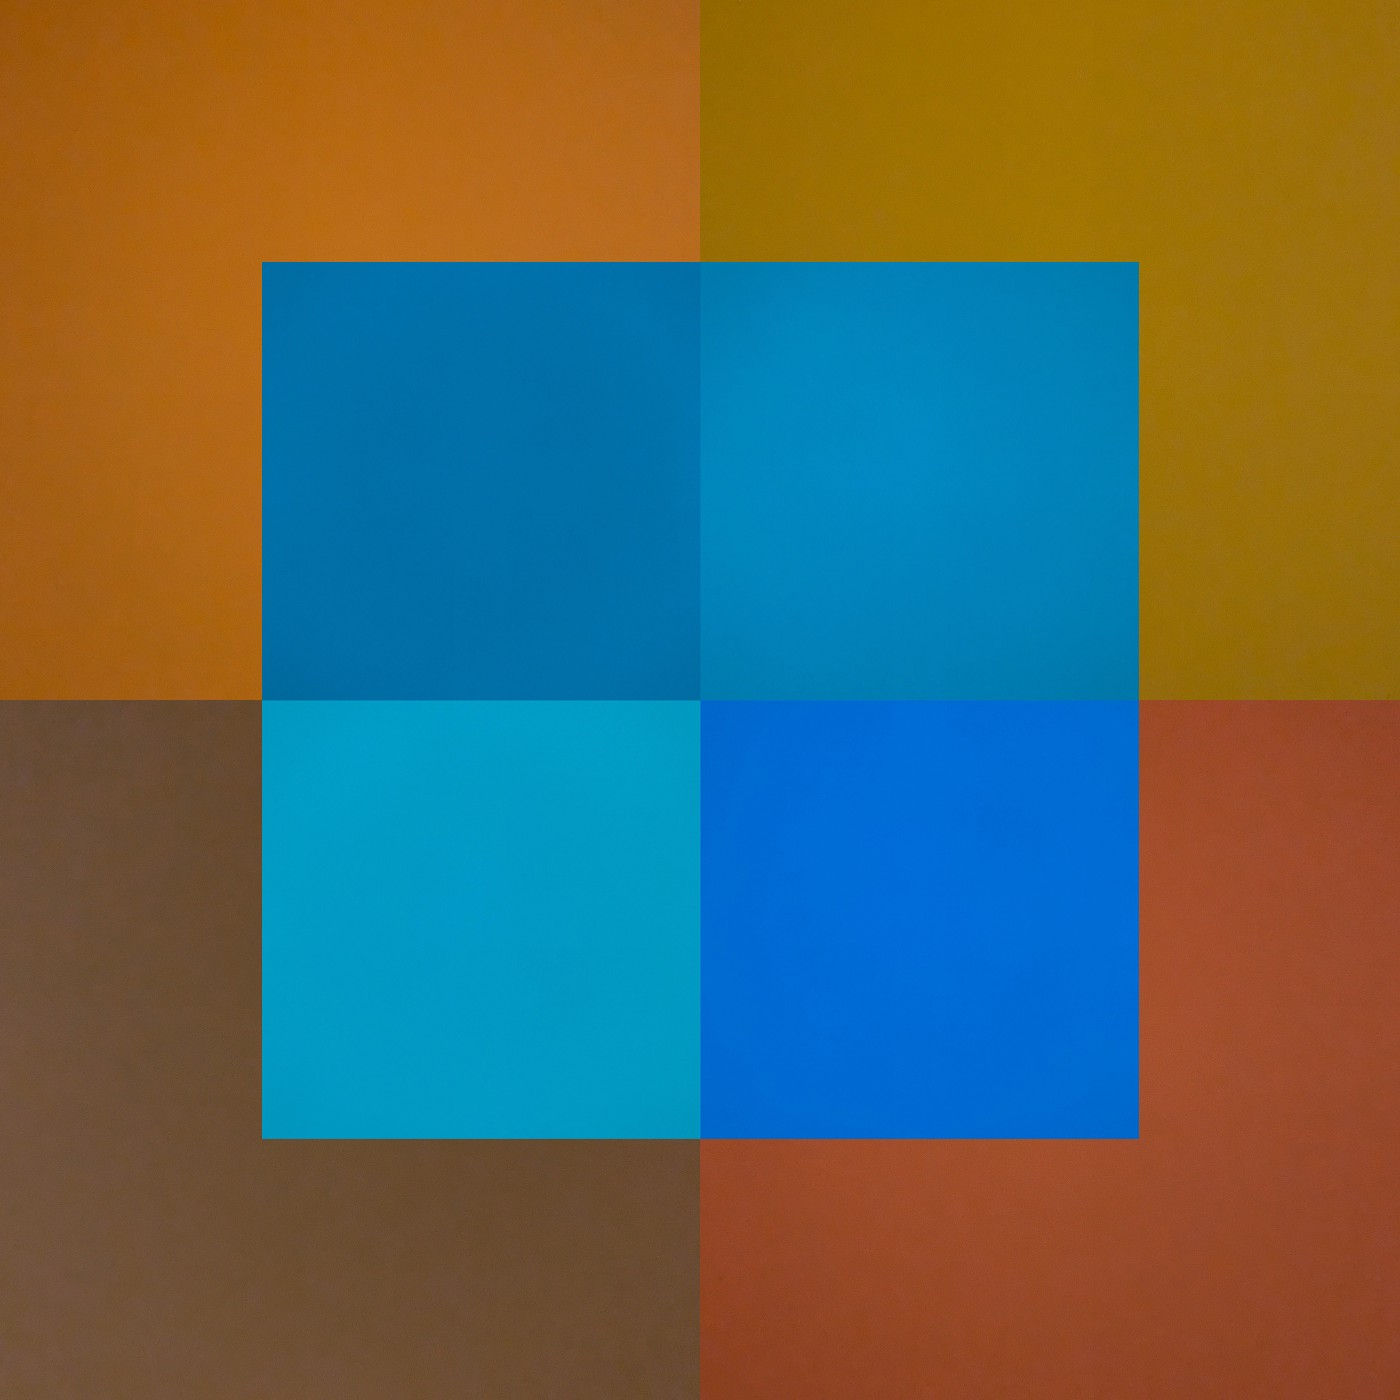 Color blocks layered on top of each other. Shades of blue hovering over warm earth tones.